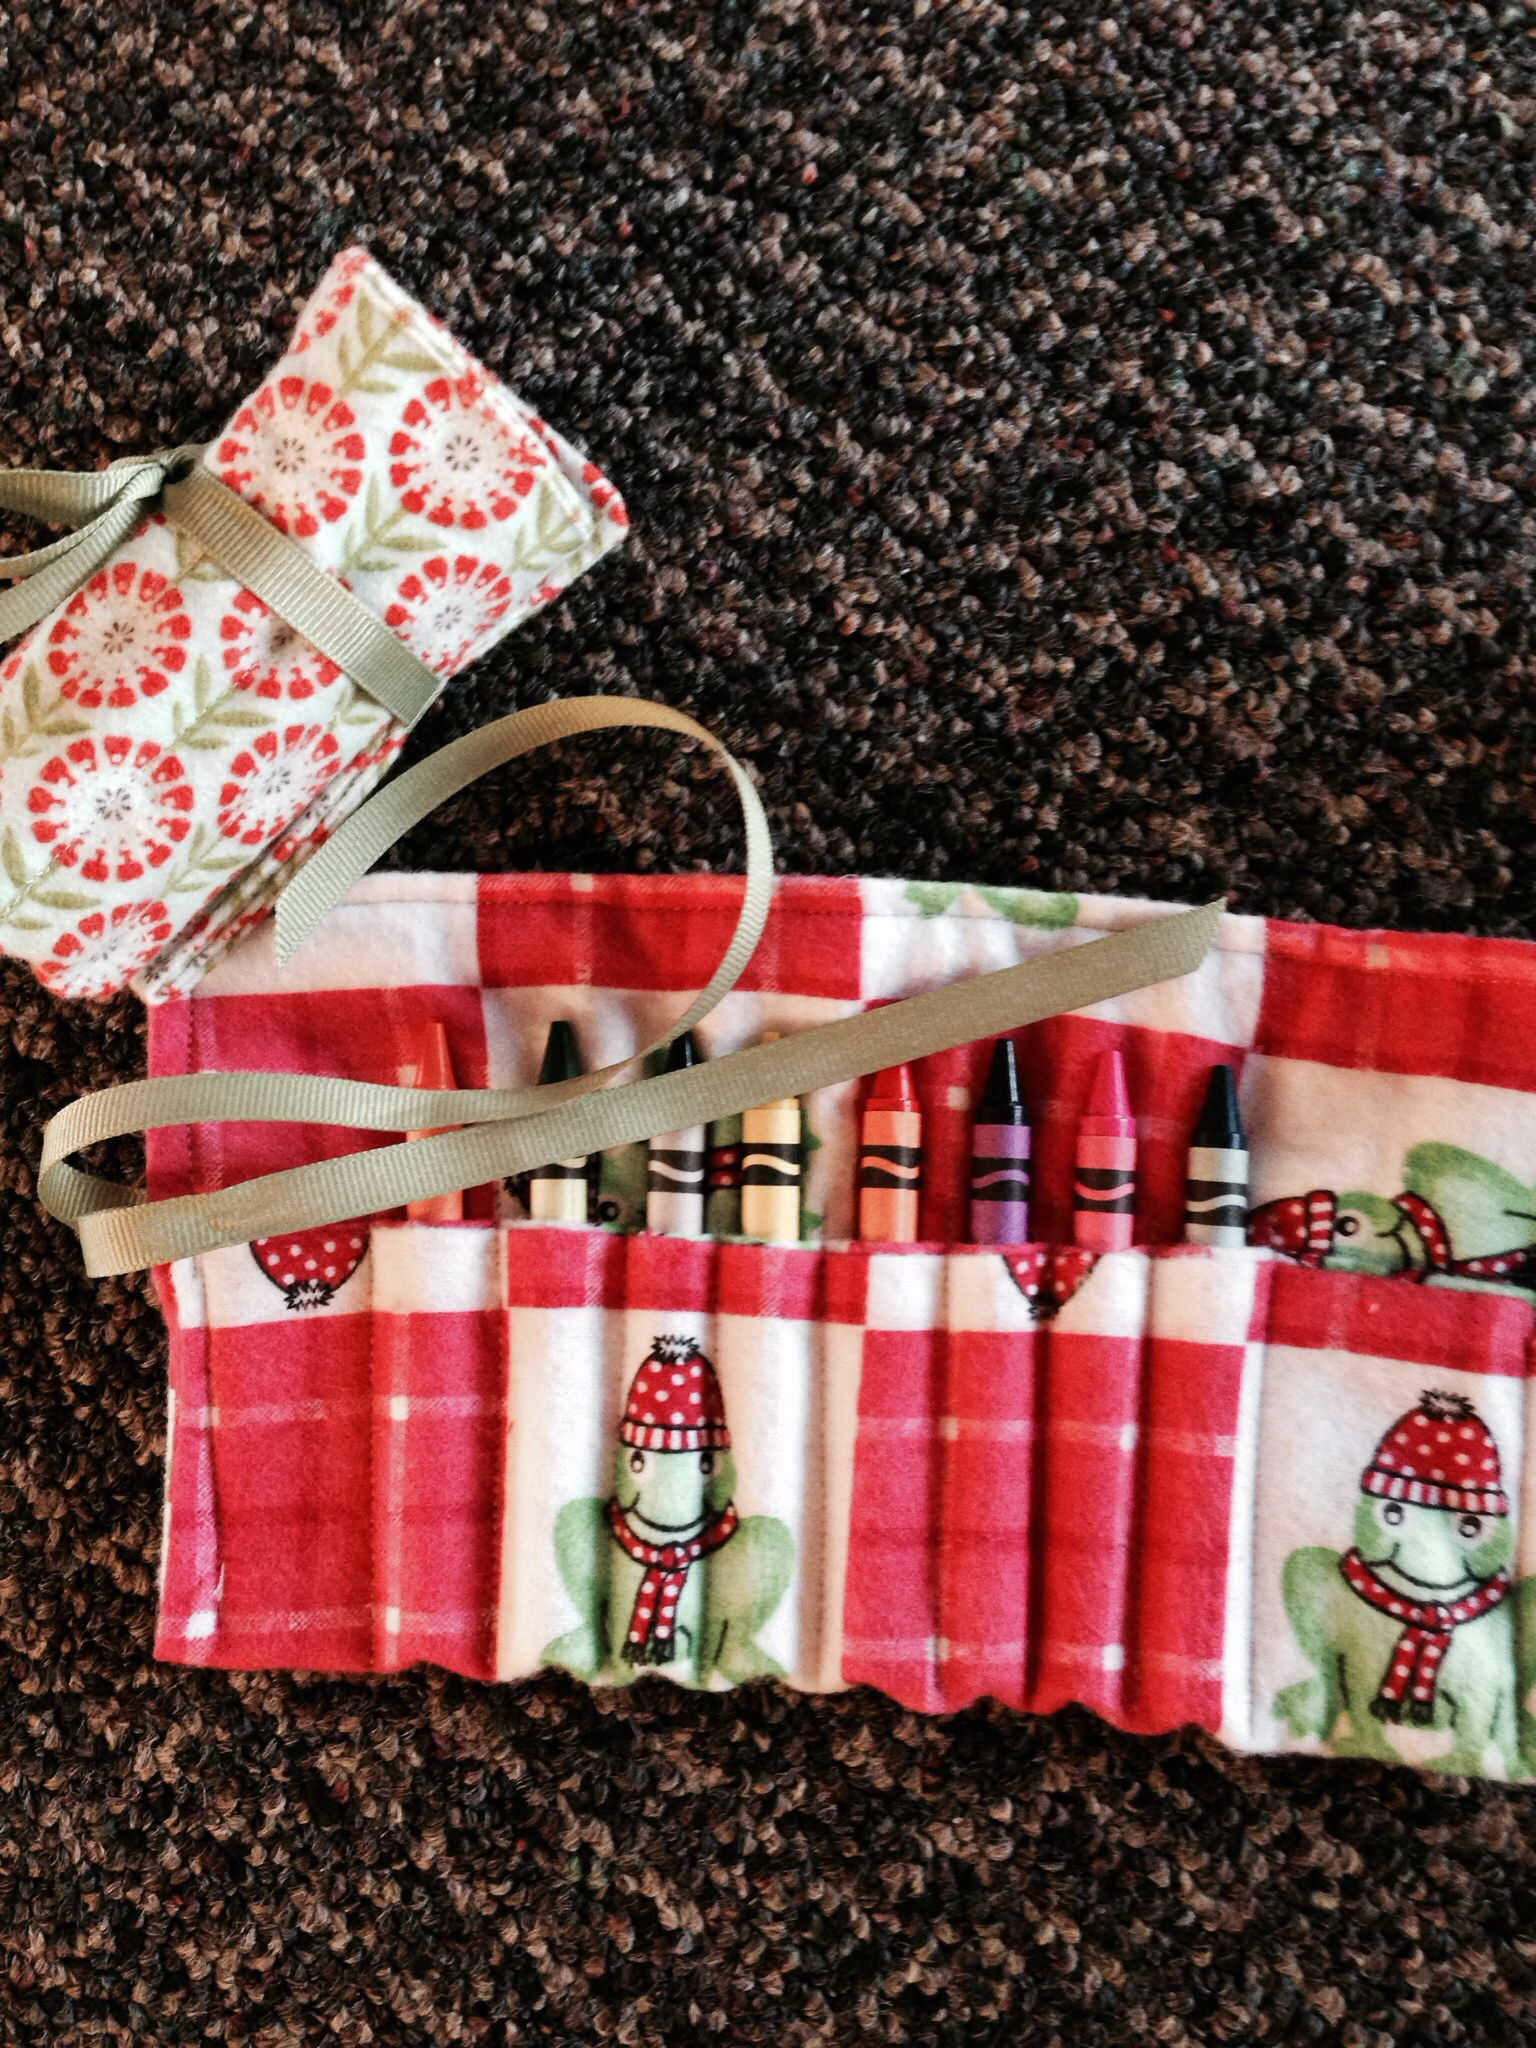 Home sewn crayon carry roll up......in stores for up to $13.... Less than half that at the fair!